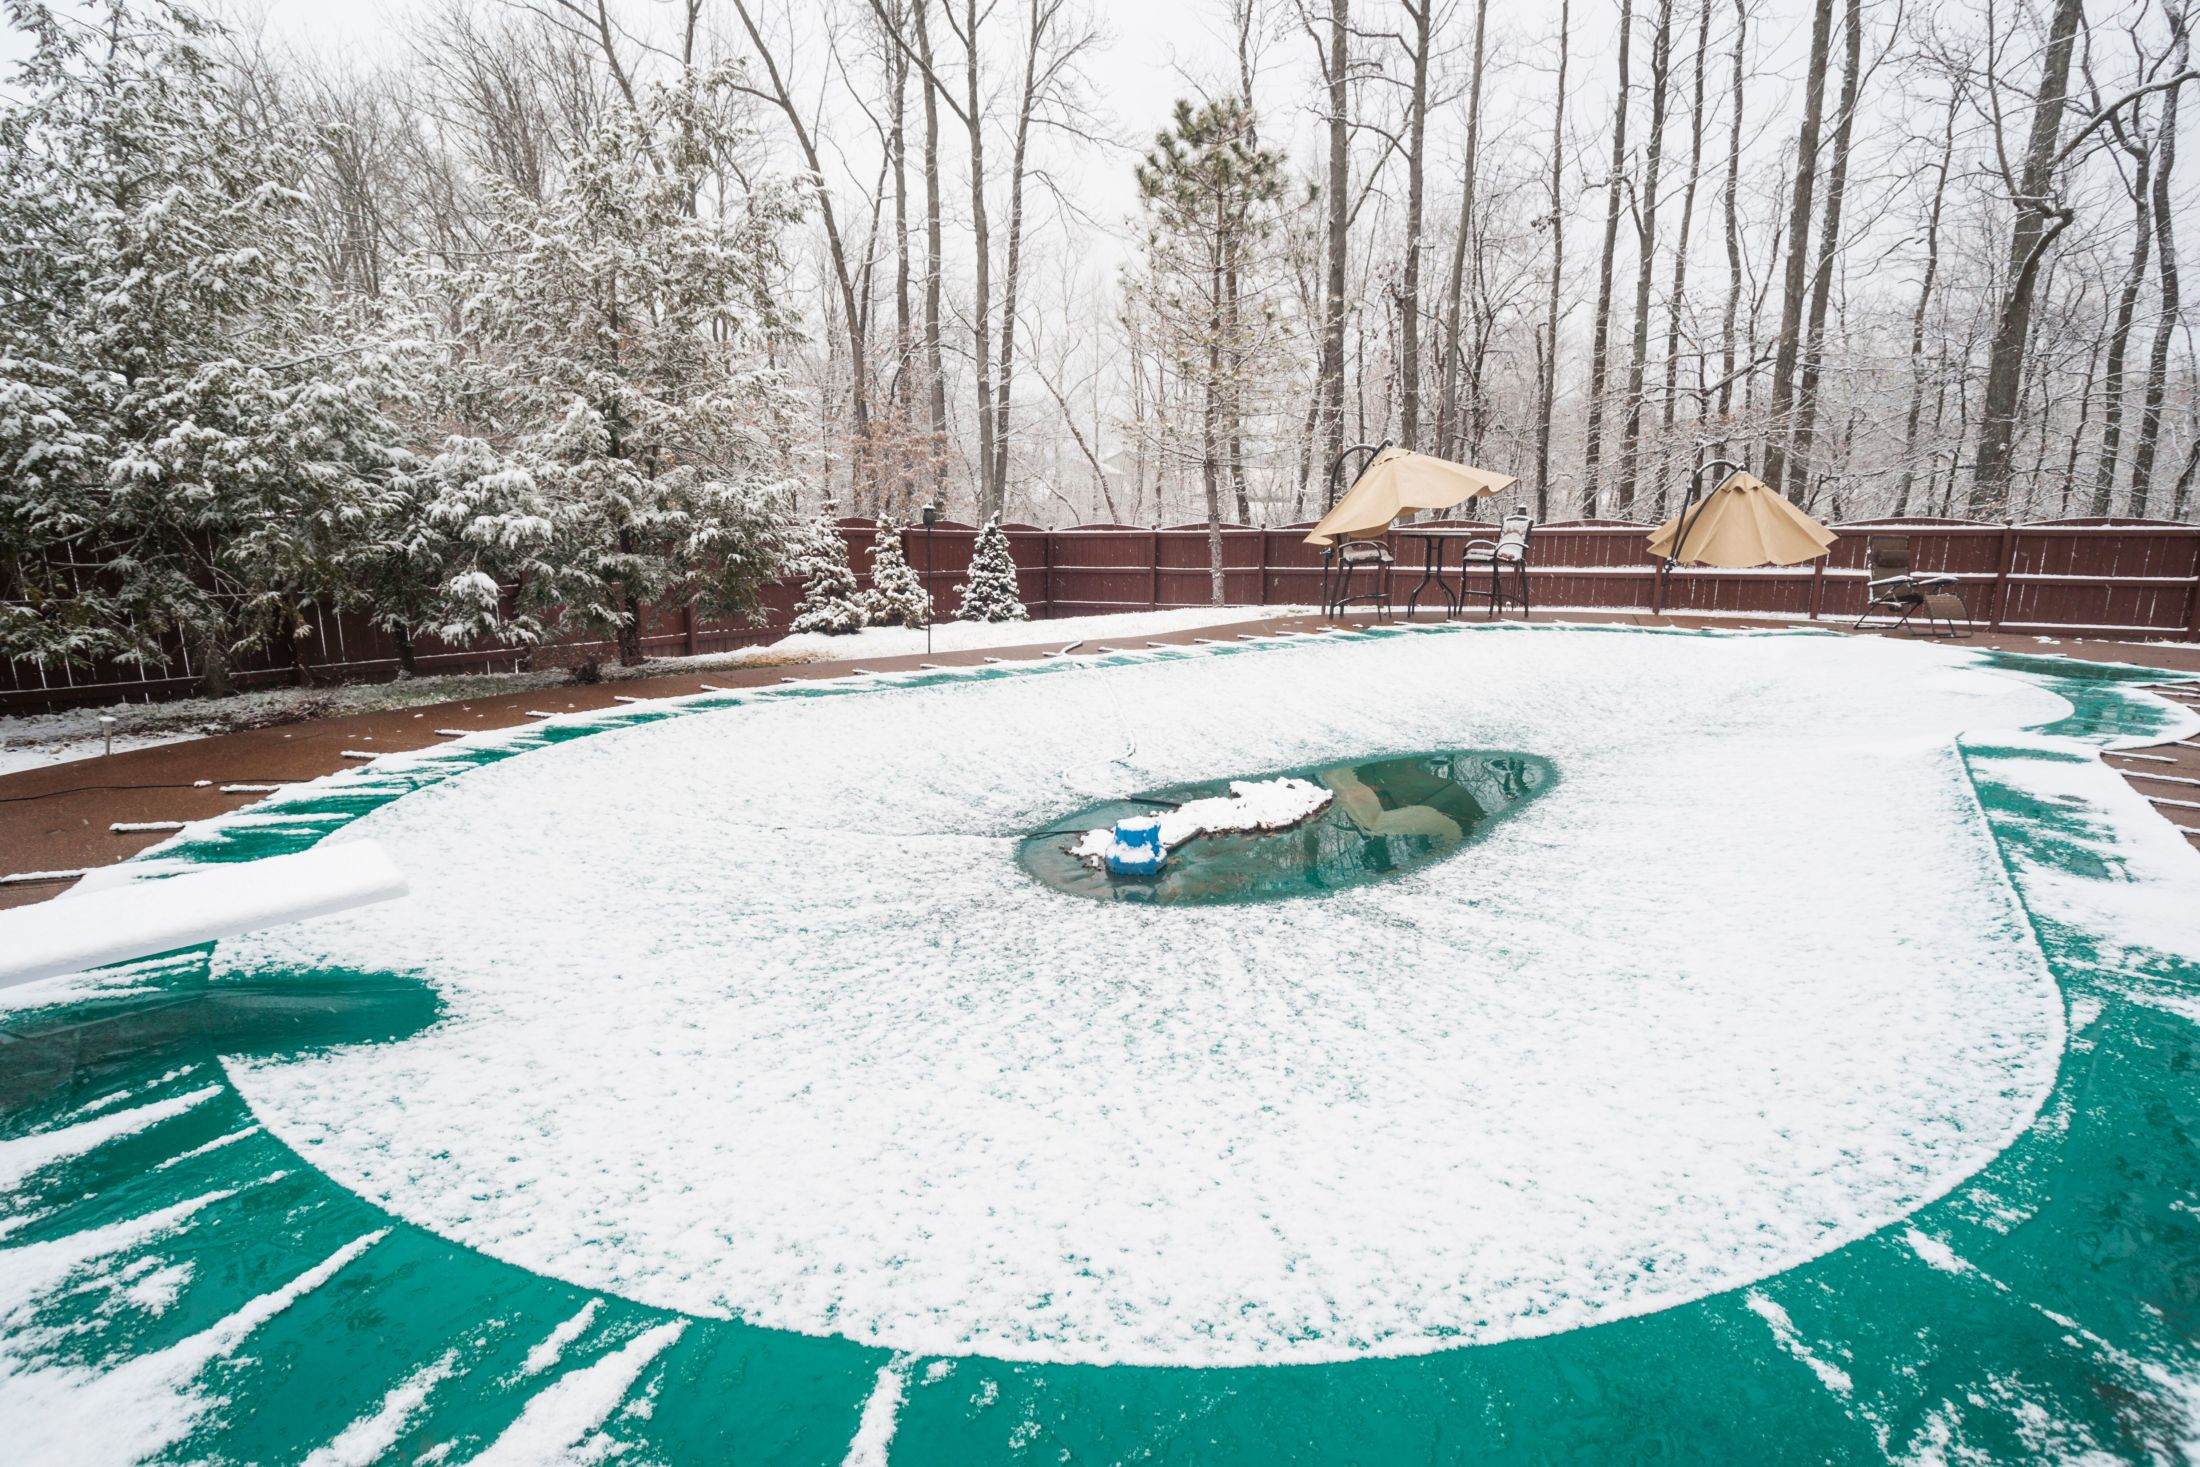 Pool-cover-on-pool-Winter-Pool-Care-for-Tips